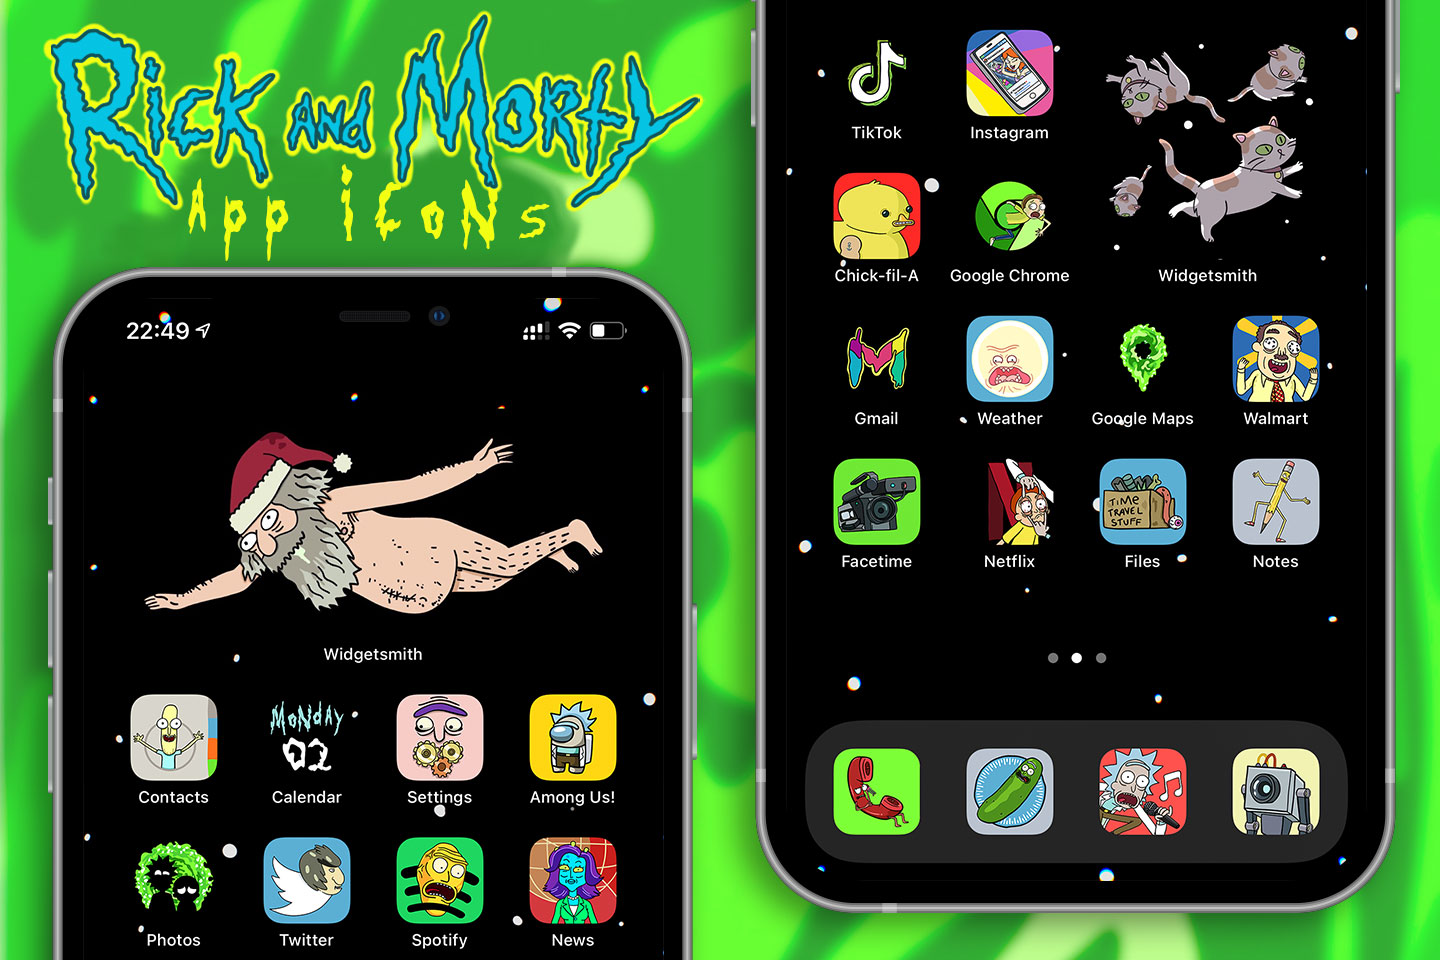 rick and morty app icons pack